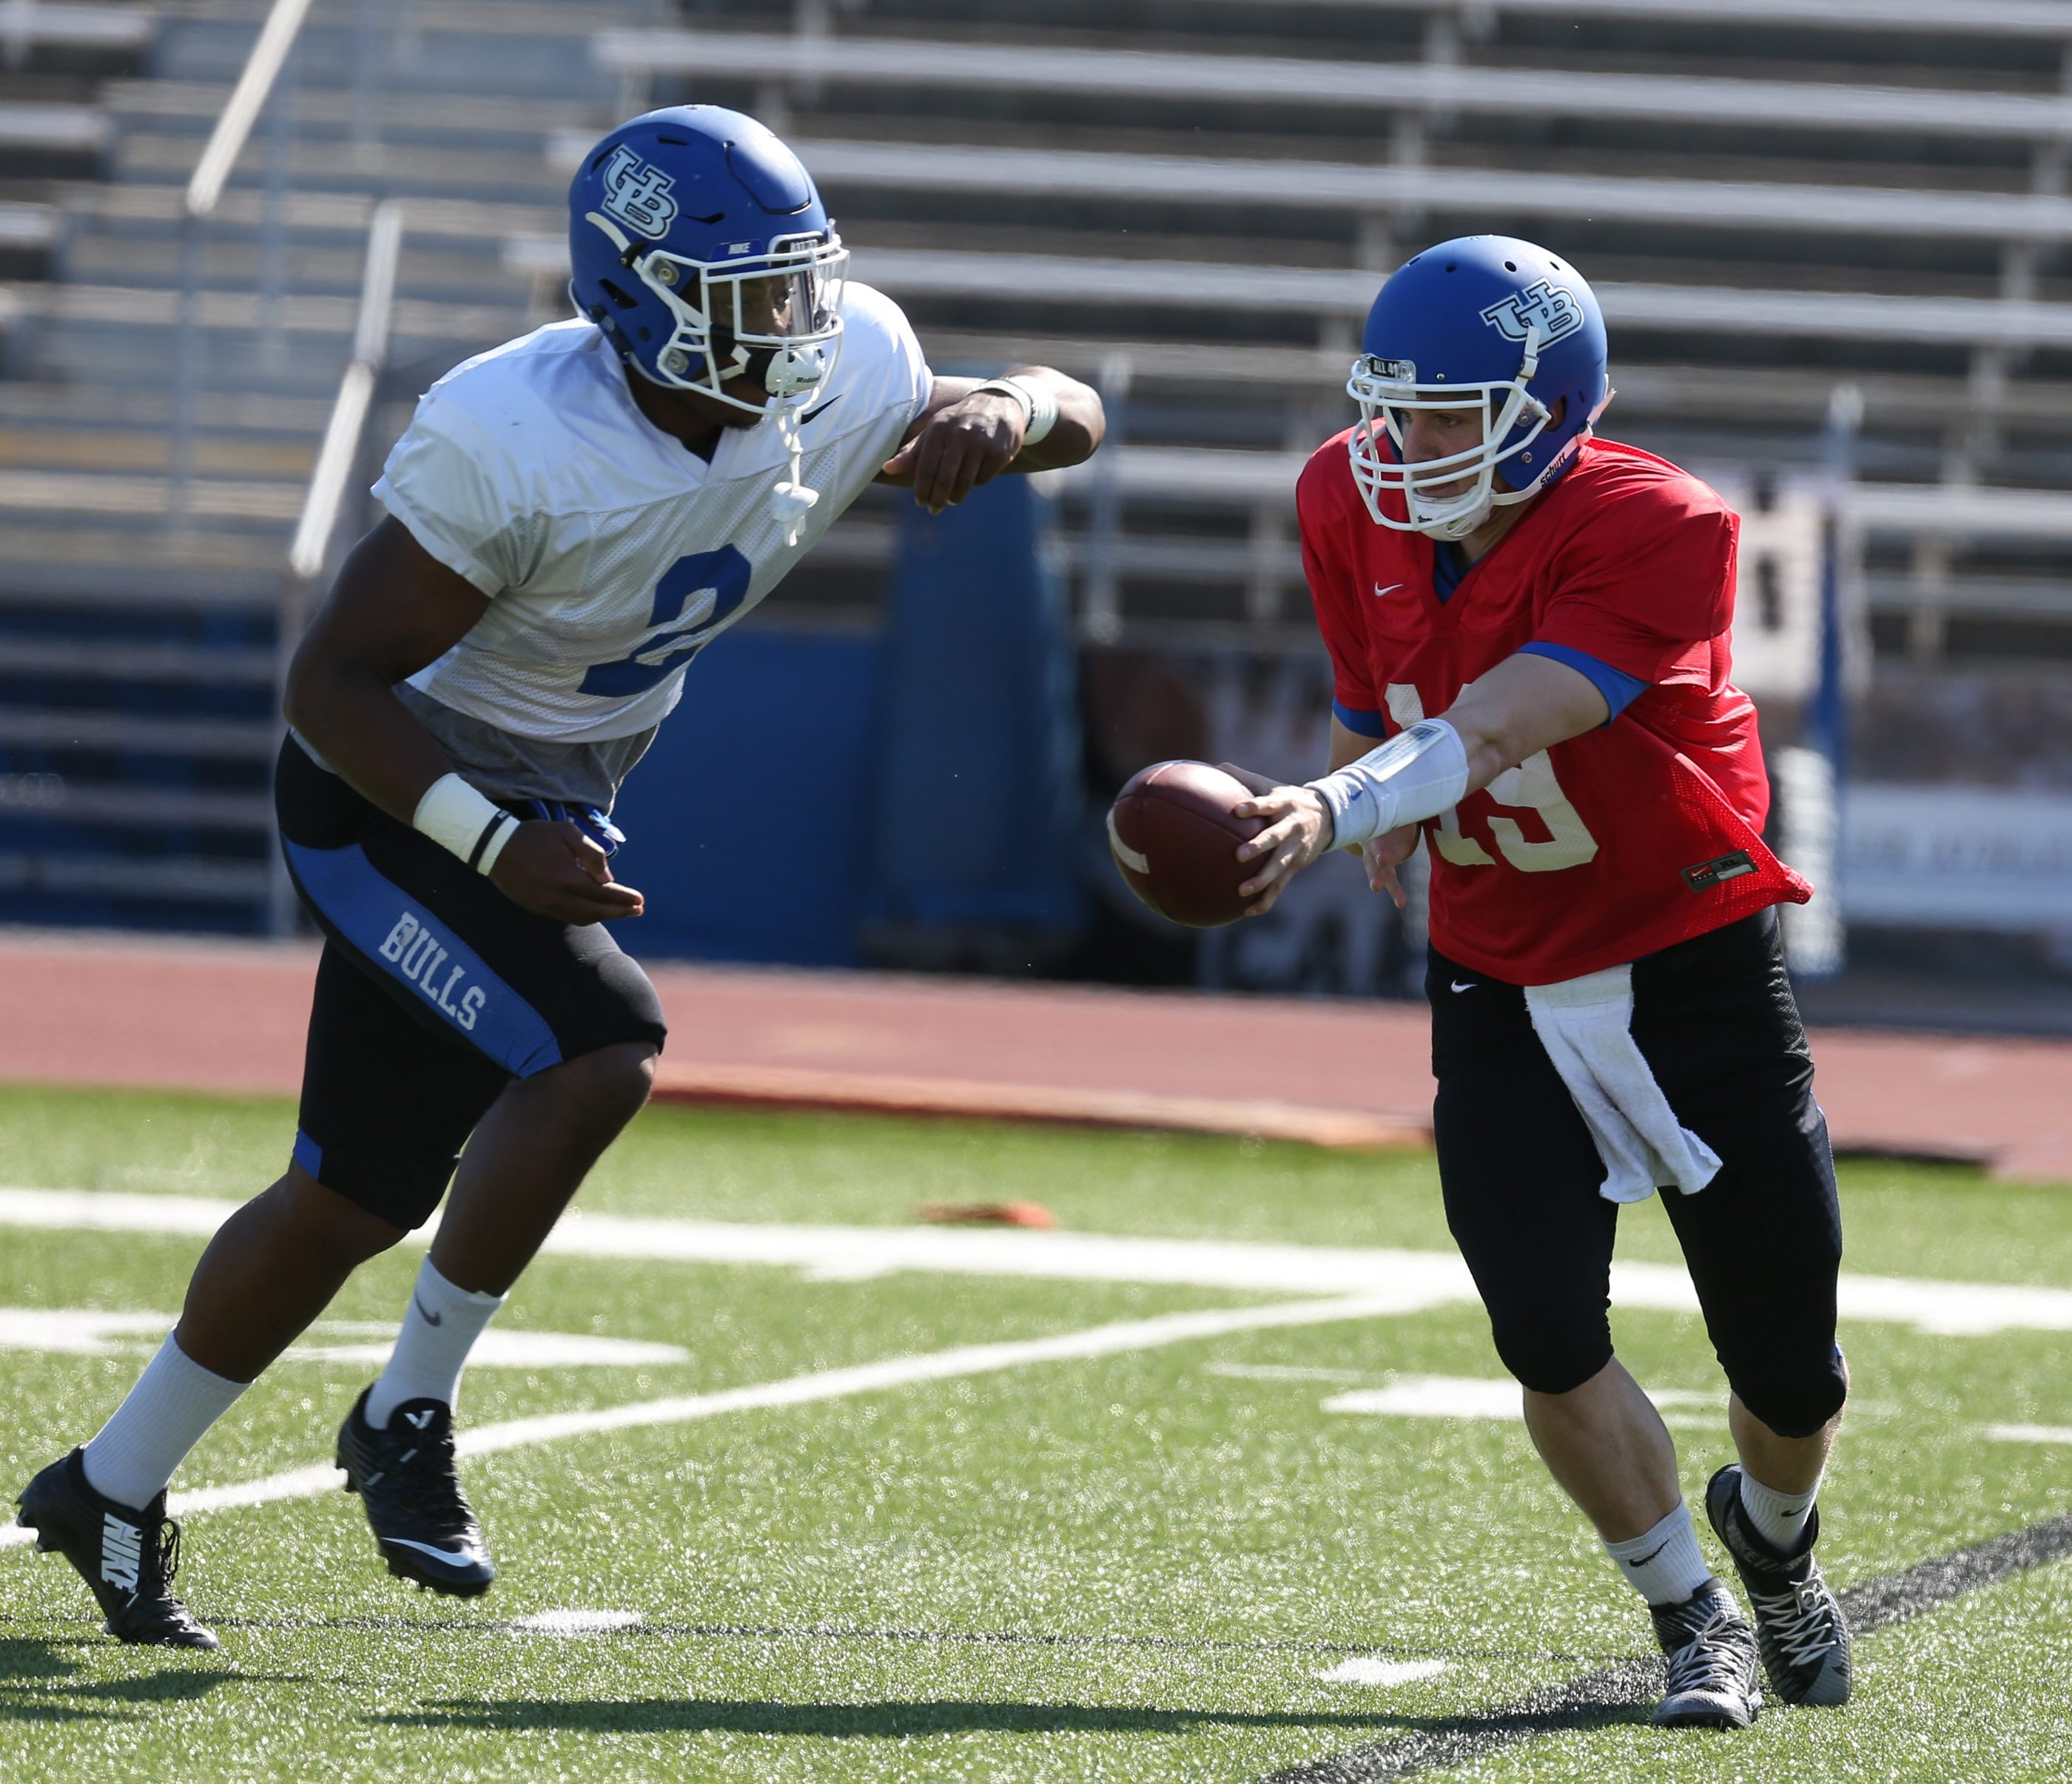 Quarterback Grant Rohach hands off  to Jordan Johnson during individual drills before Saturday's UB scrimmage at UB Stadium. Johnson sat out the scrimmage with a minor injury. (James P. McCoy/Buffalo News)